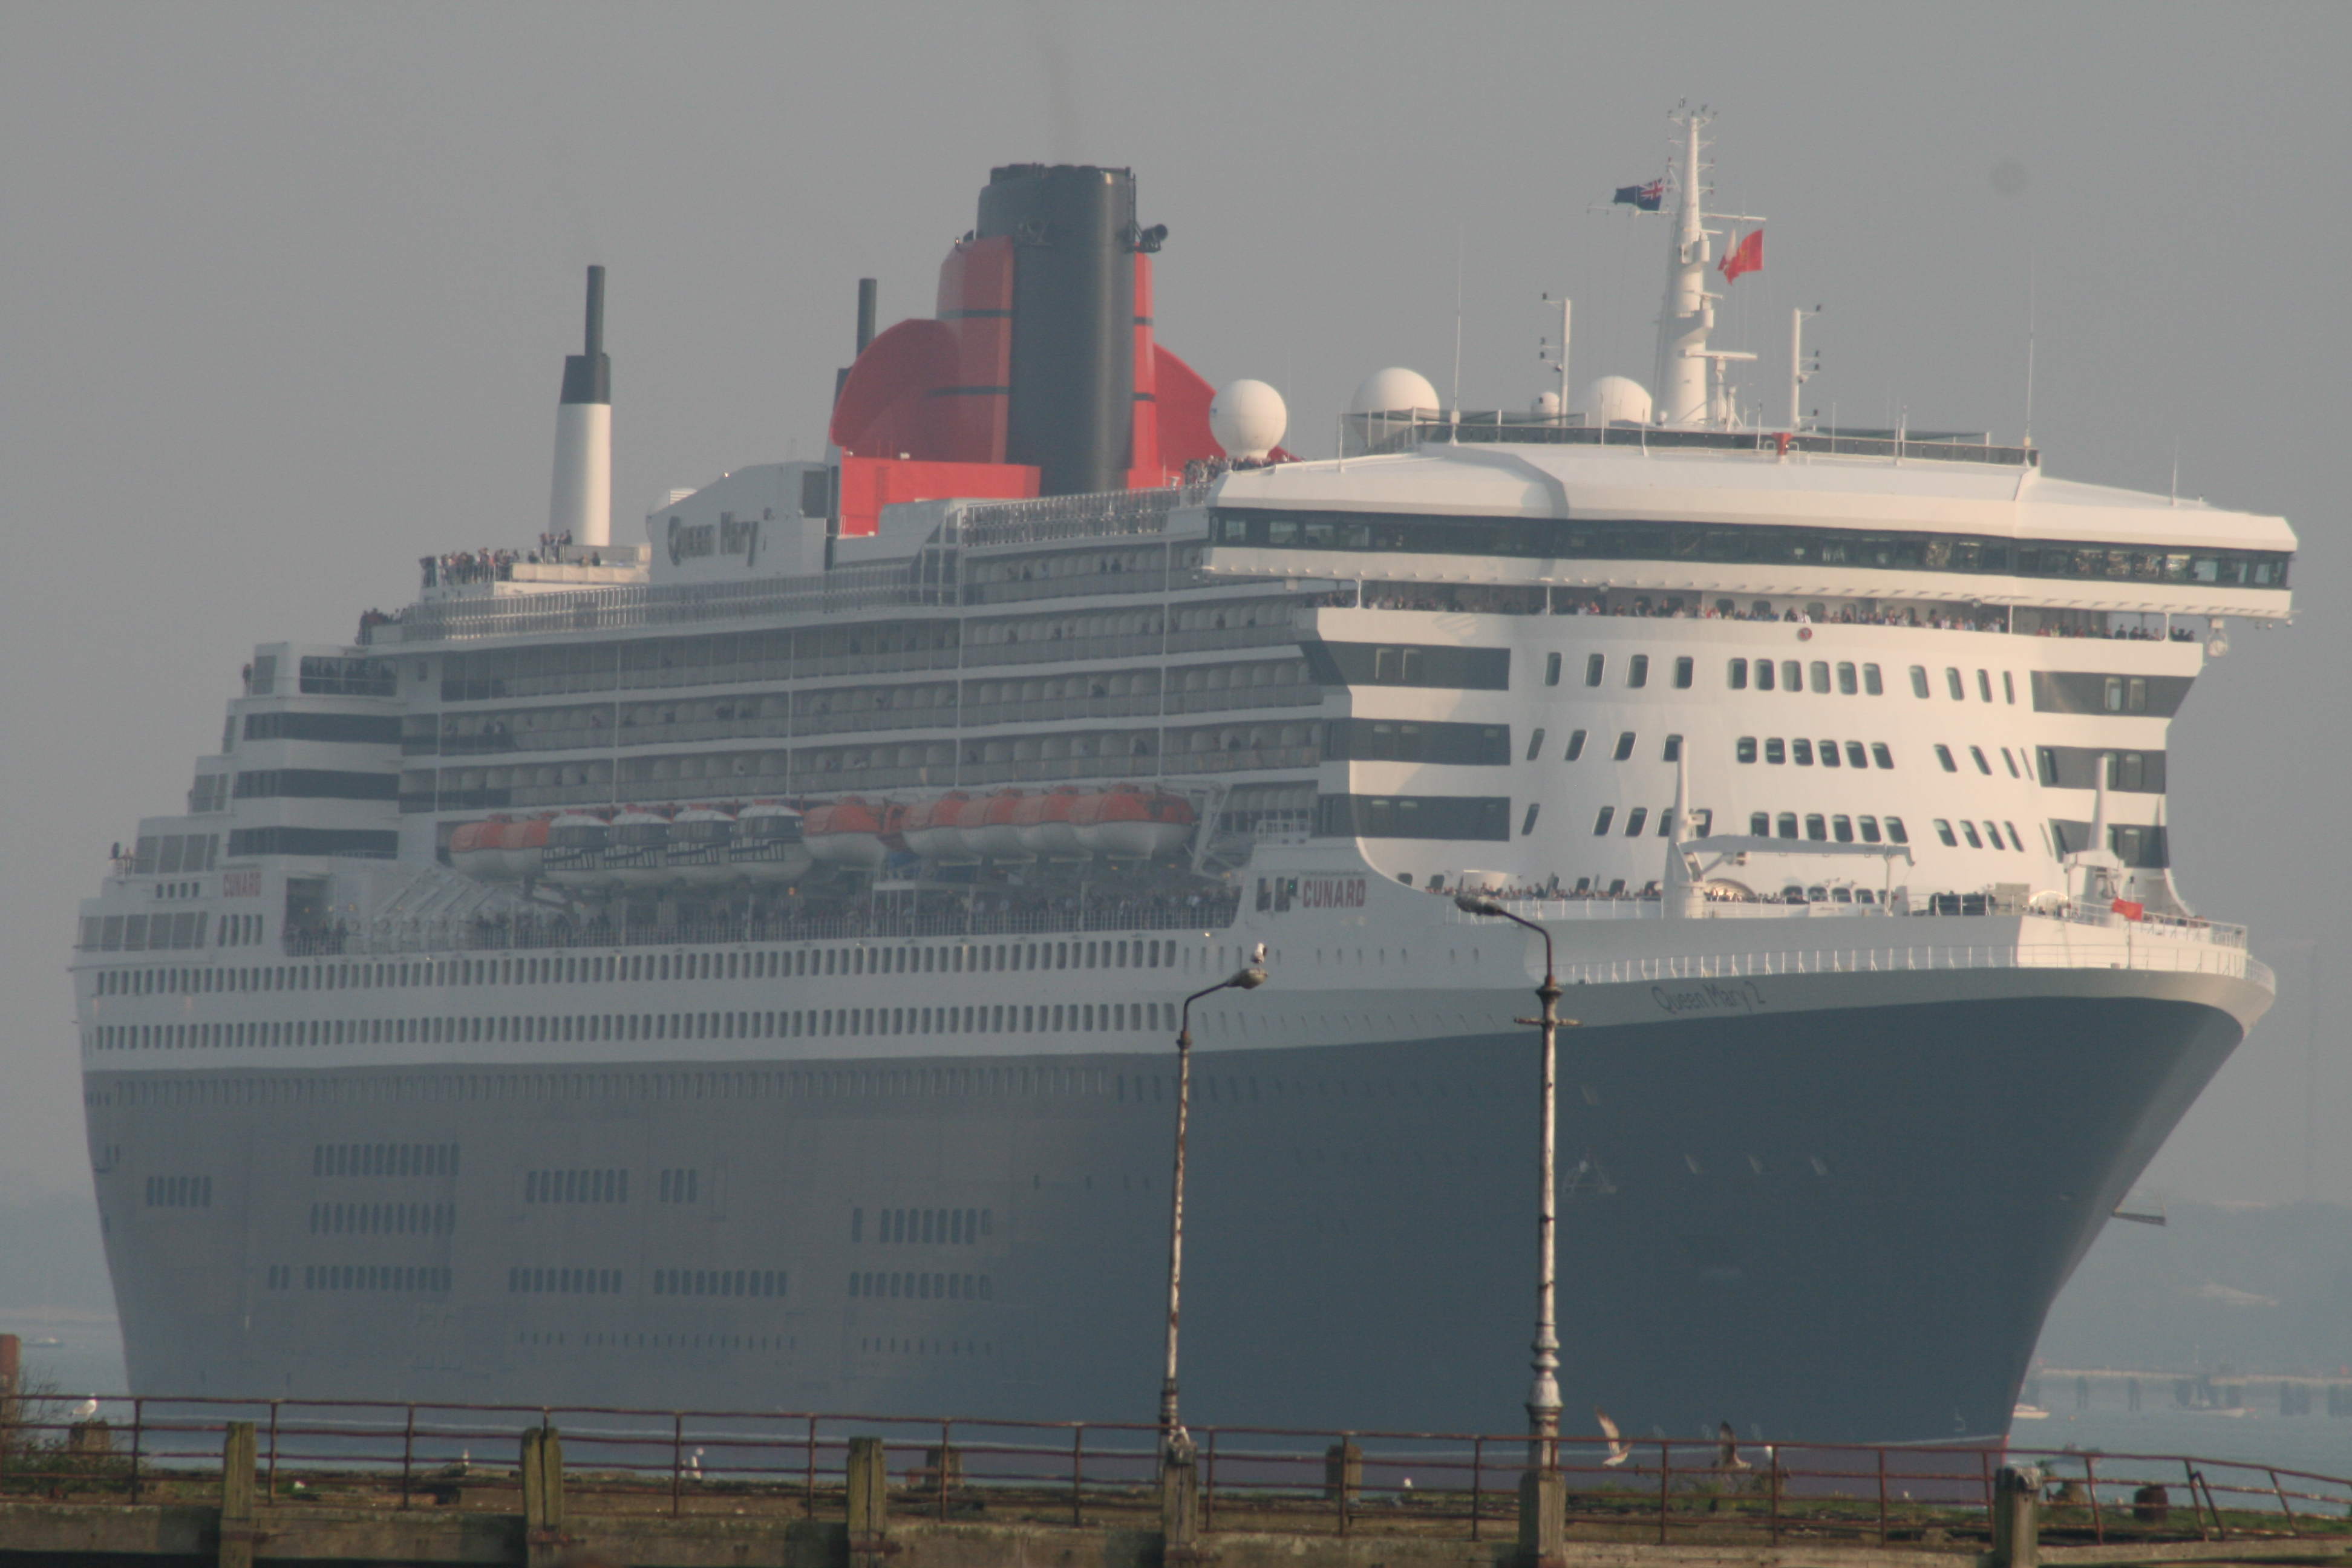 1000 images about queen mary 2 on pinterest queen mary for Garderobe queen mary 2